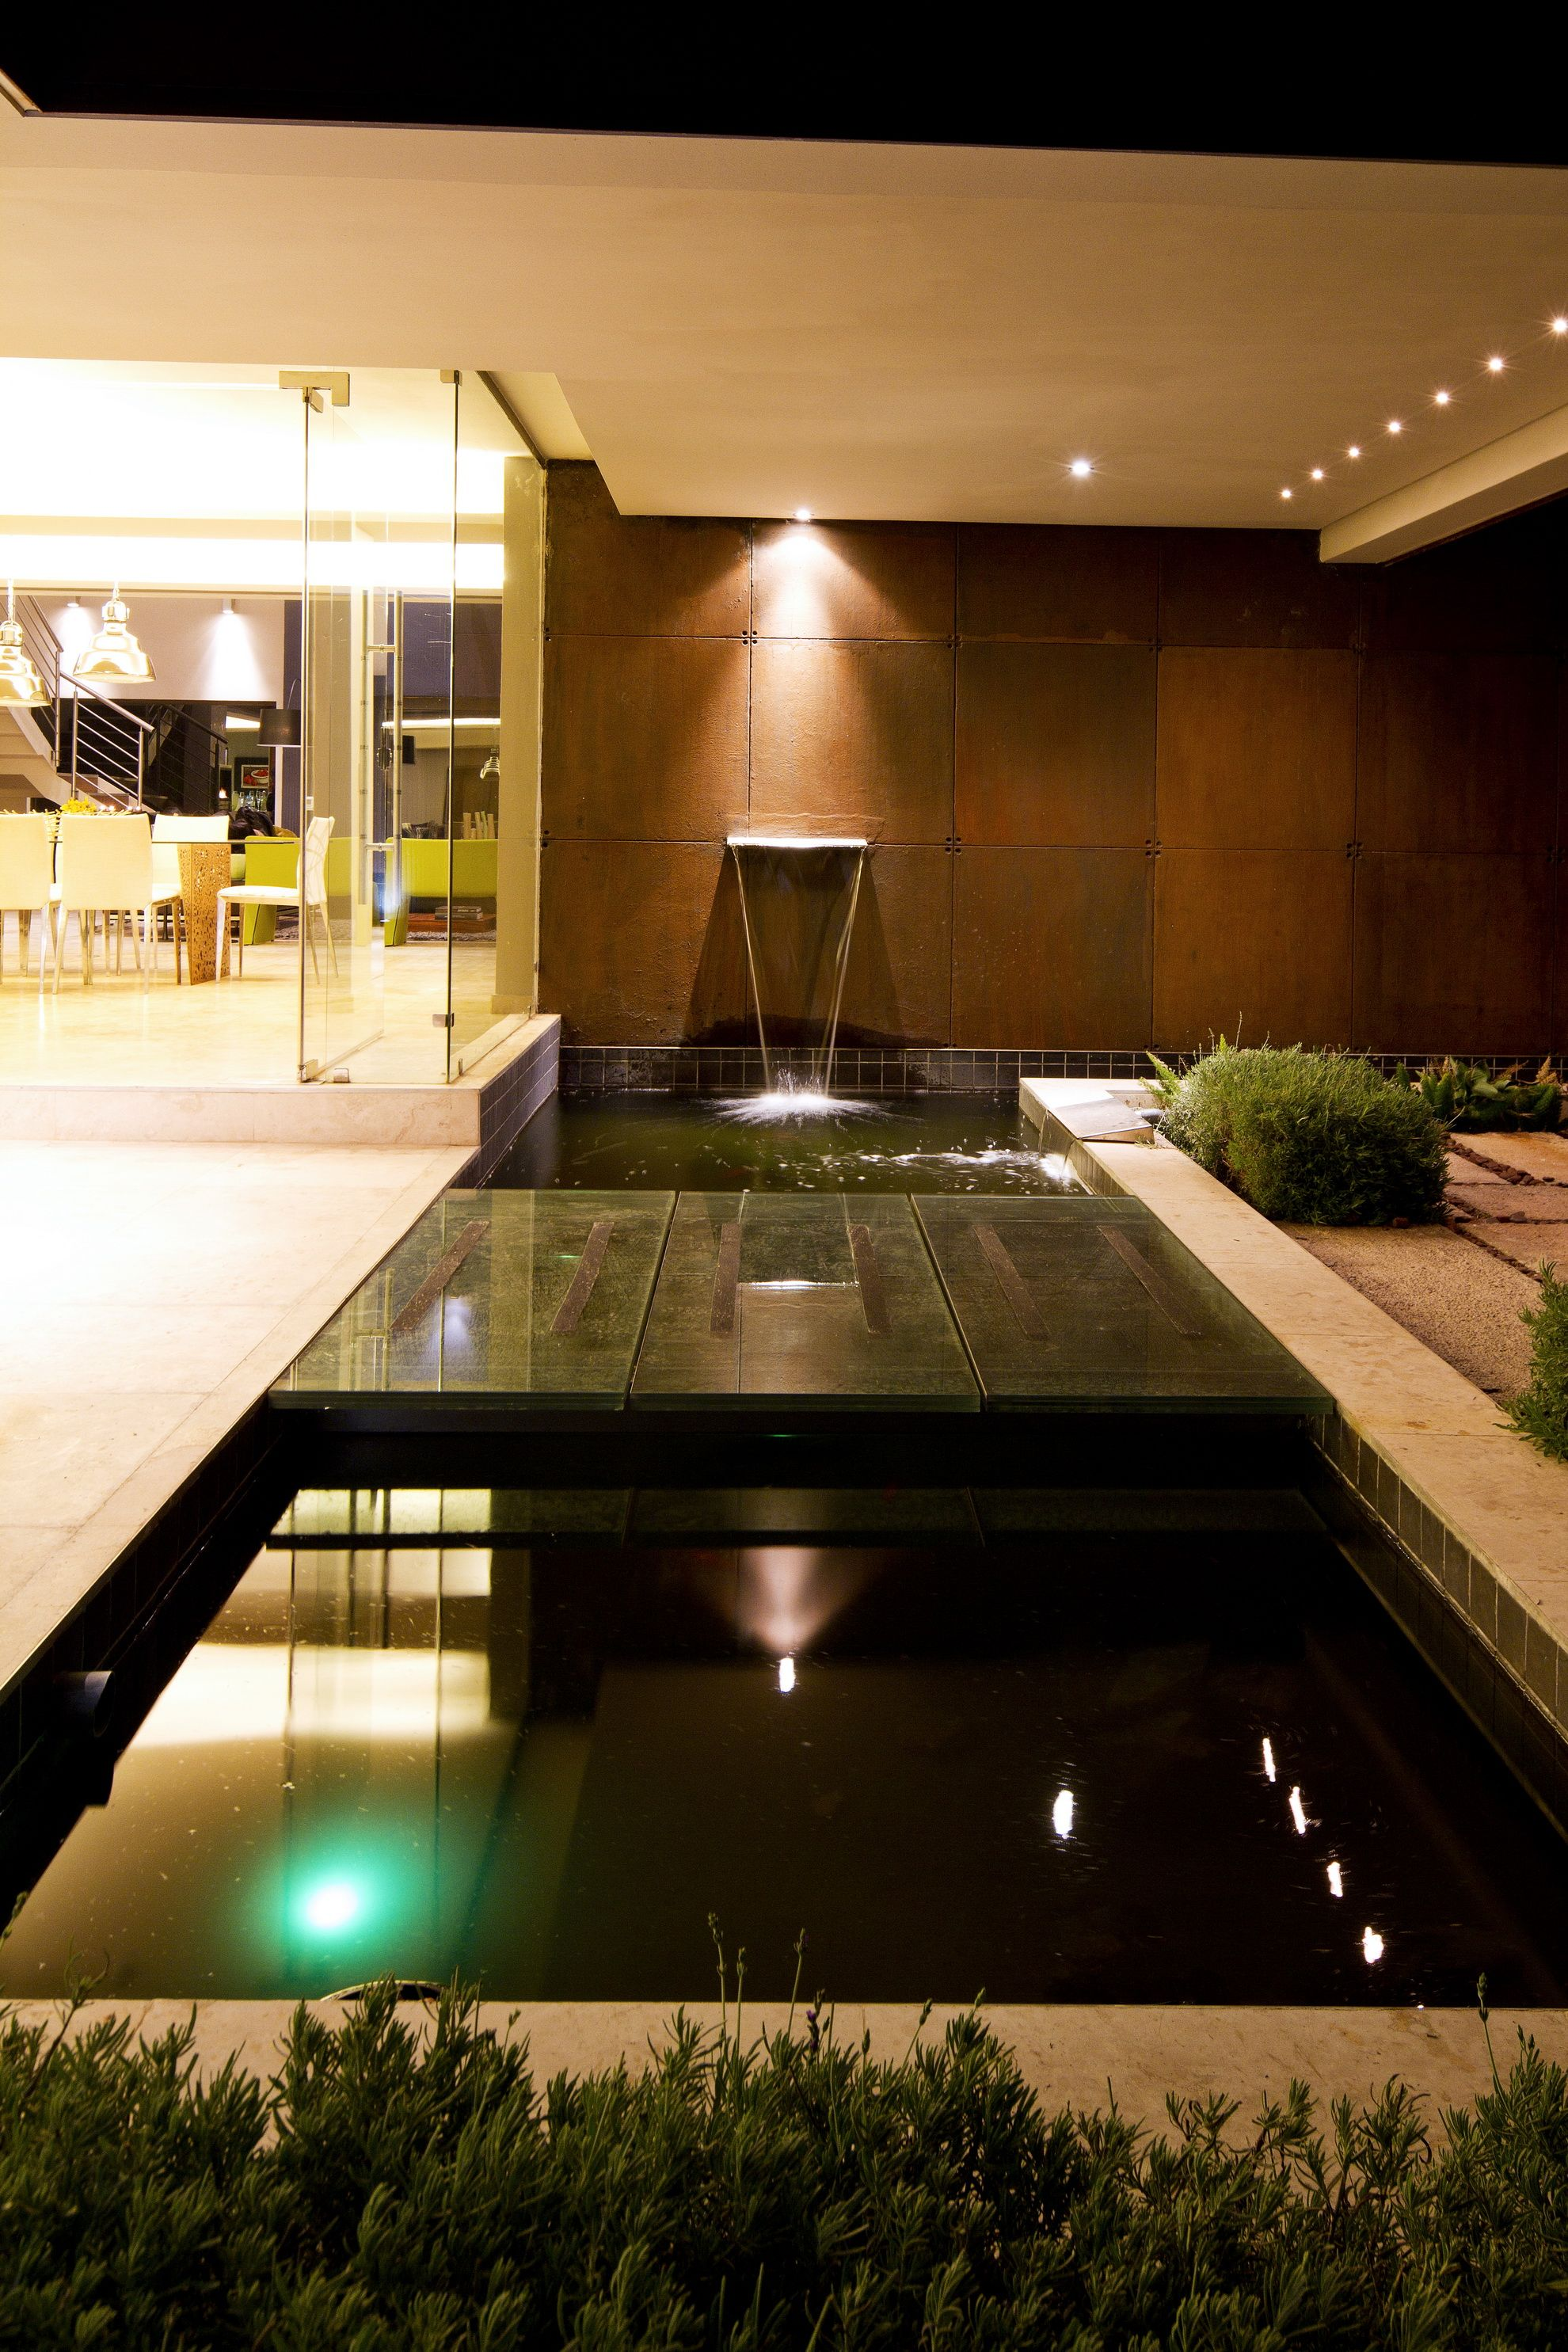 House The | Inviting water feature | Nico van der Meulen Architects ...